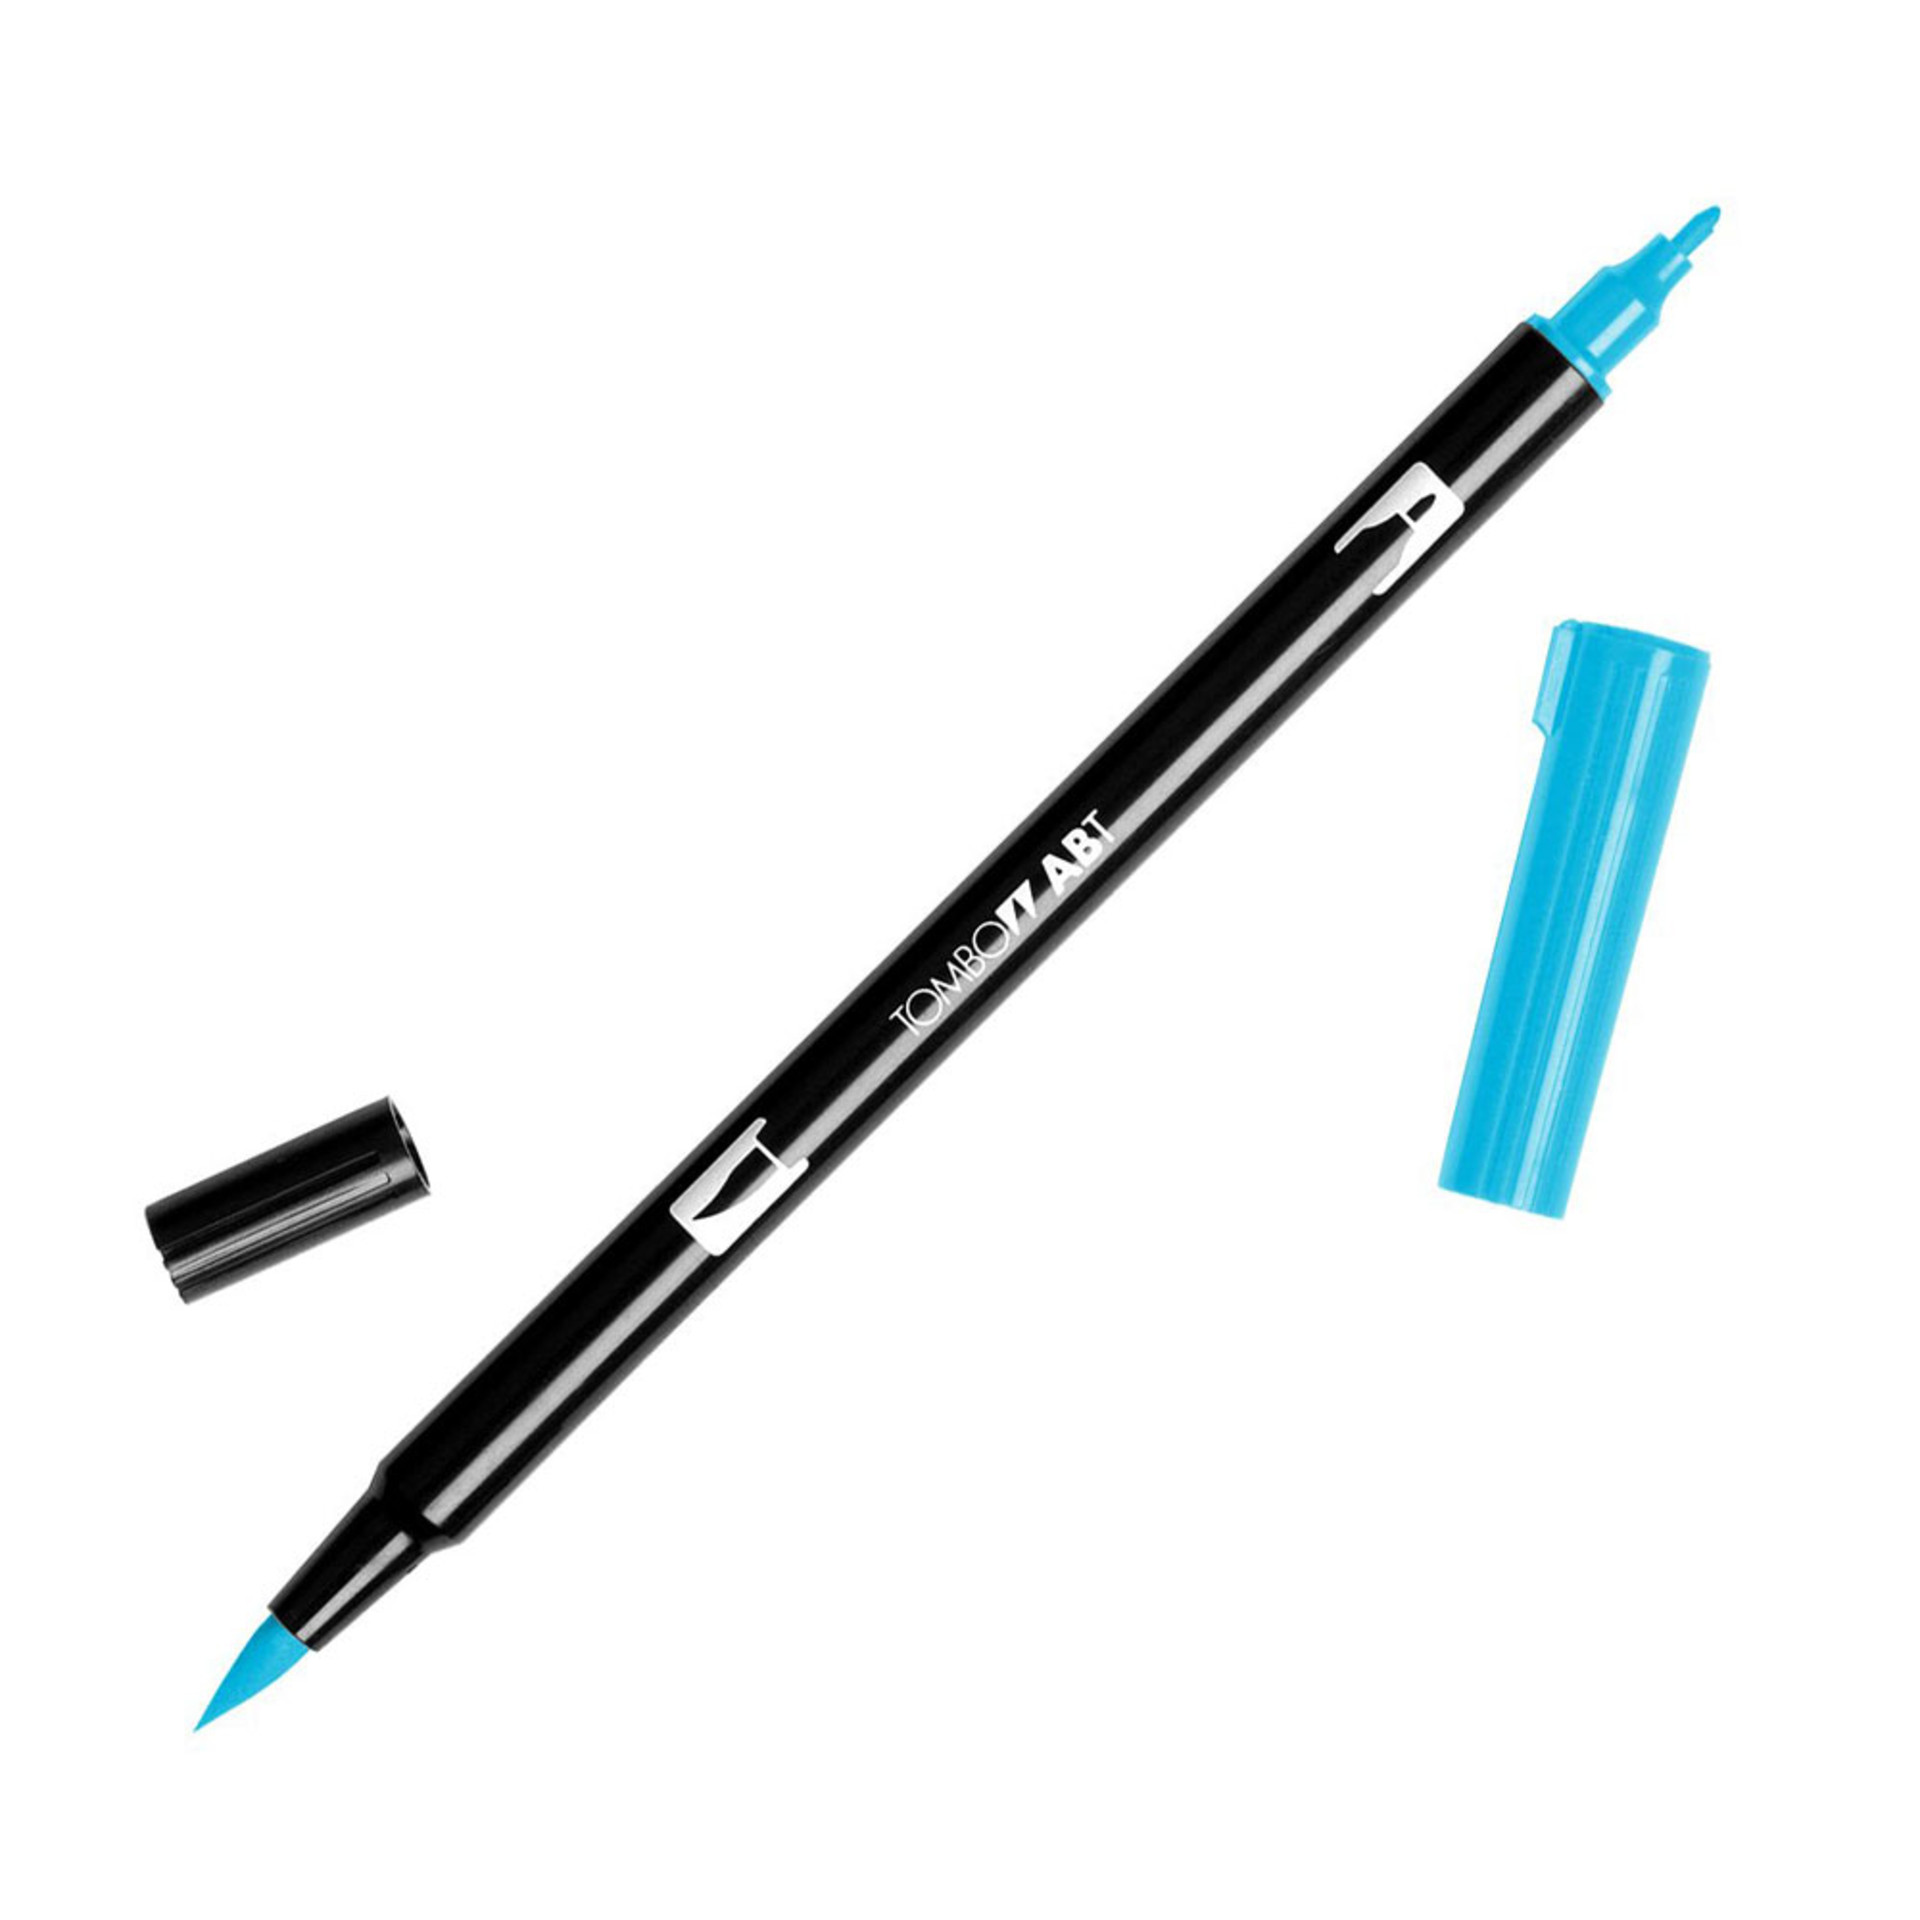 Tombow Dual-Tip Brush Marker Pen – Turquoise